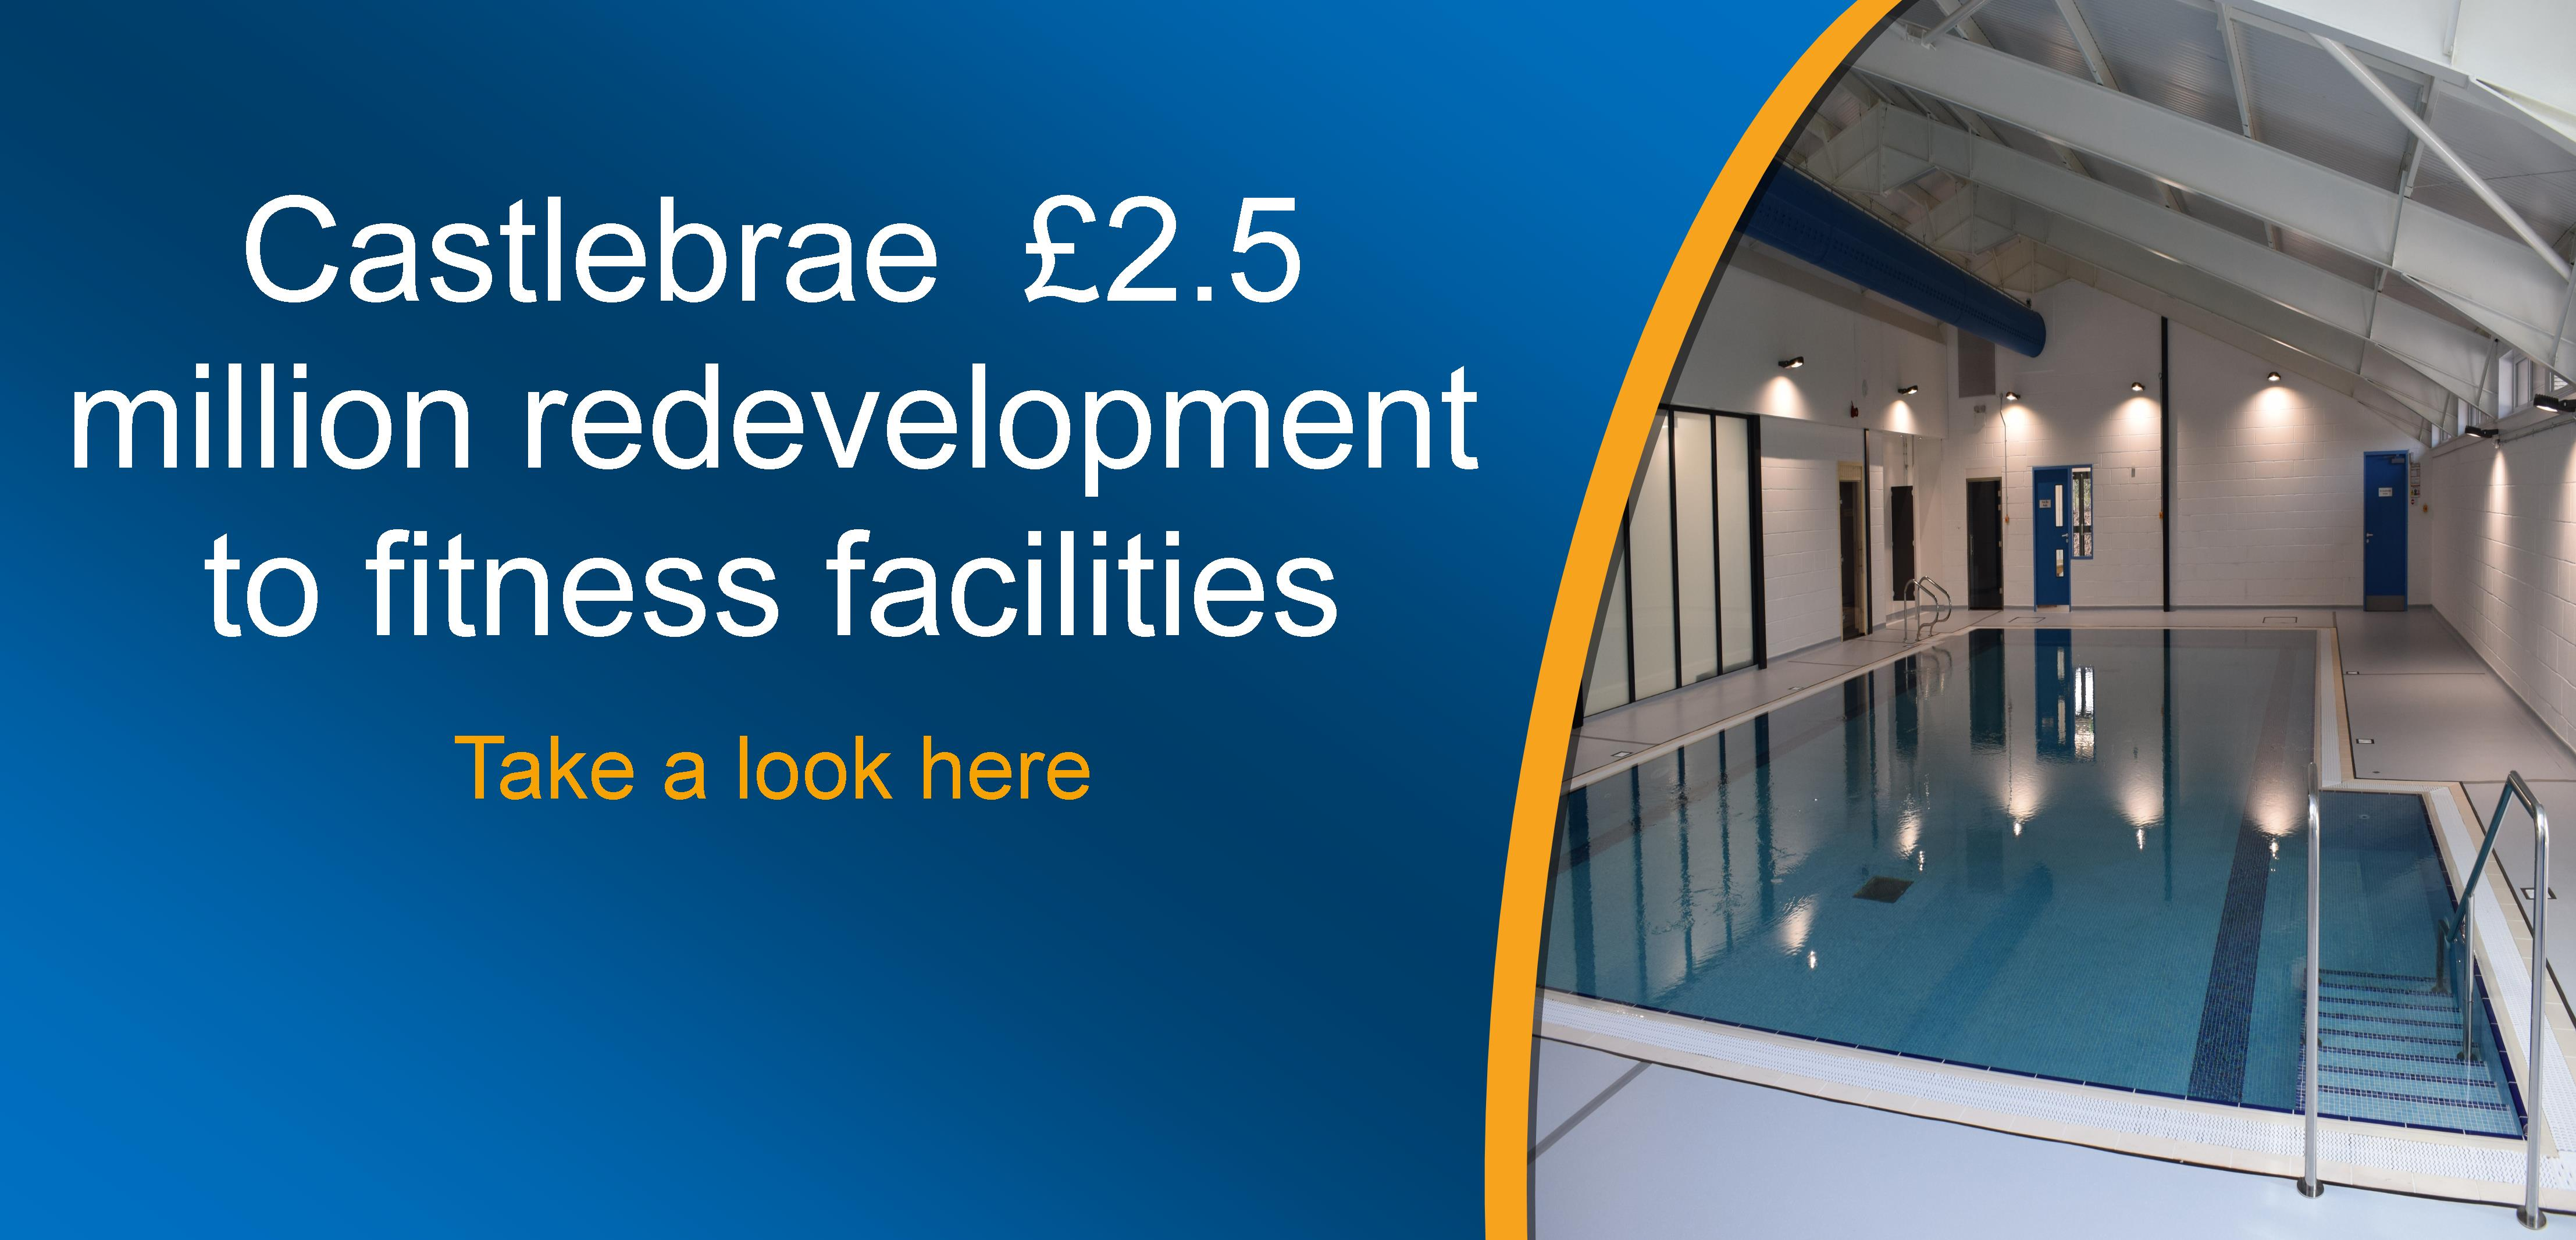 View our new facilities promotional video